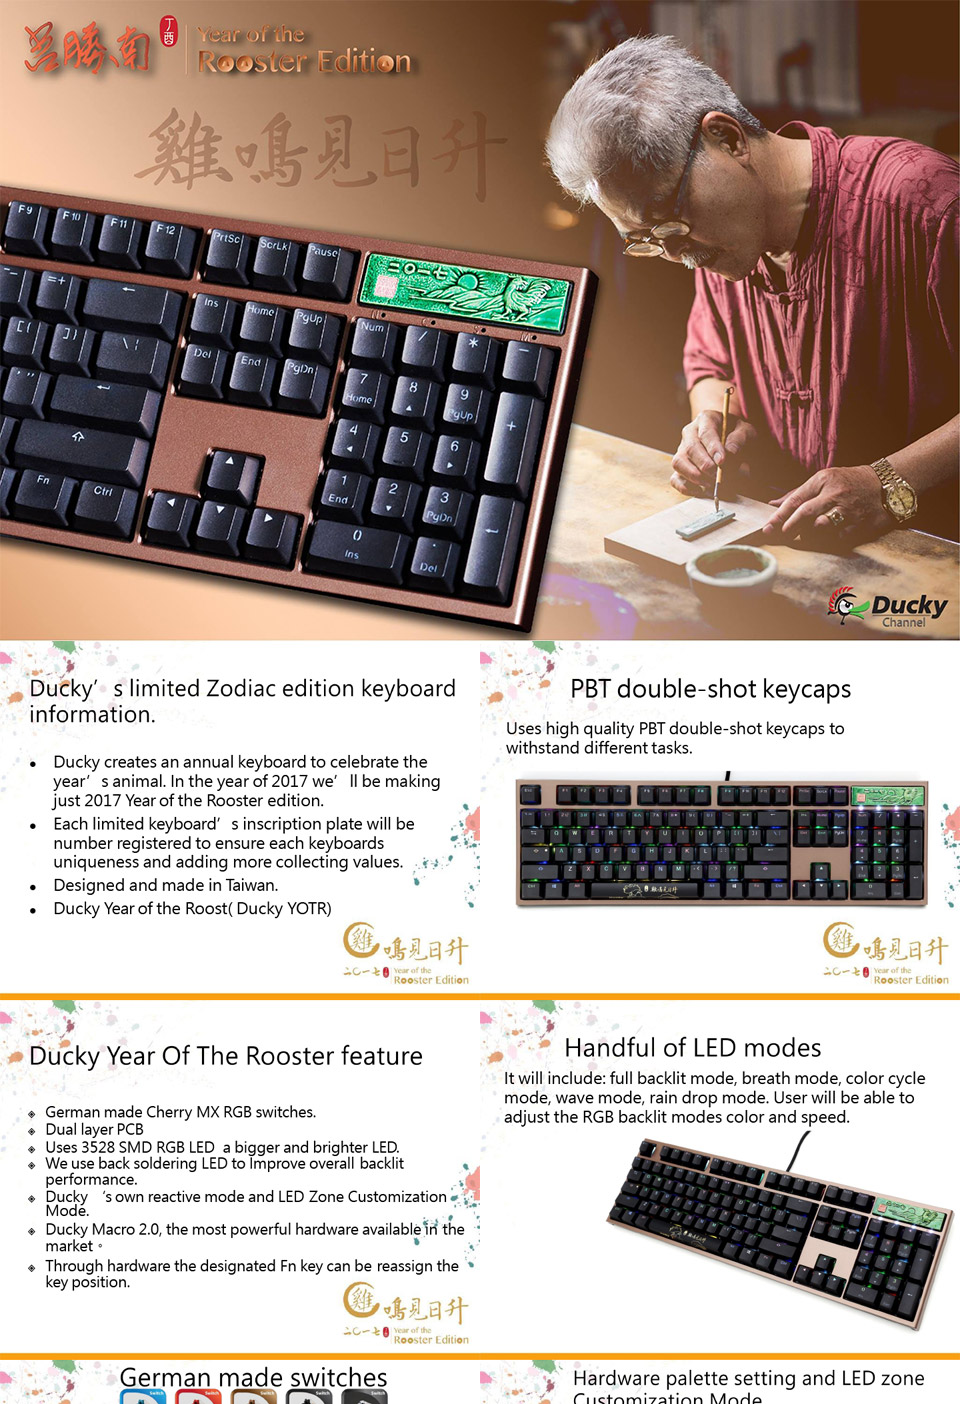 Ducky Year Of The Rooster Edition Pbt Rgb Mech Kb Cherry Brown Shine 6 Special Mx 3528 Smd Leds Along With All Insane Backlighting Effects From Including Rain Drop Mode 100 Full Backlight Wave And Colour Cycling